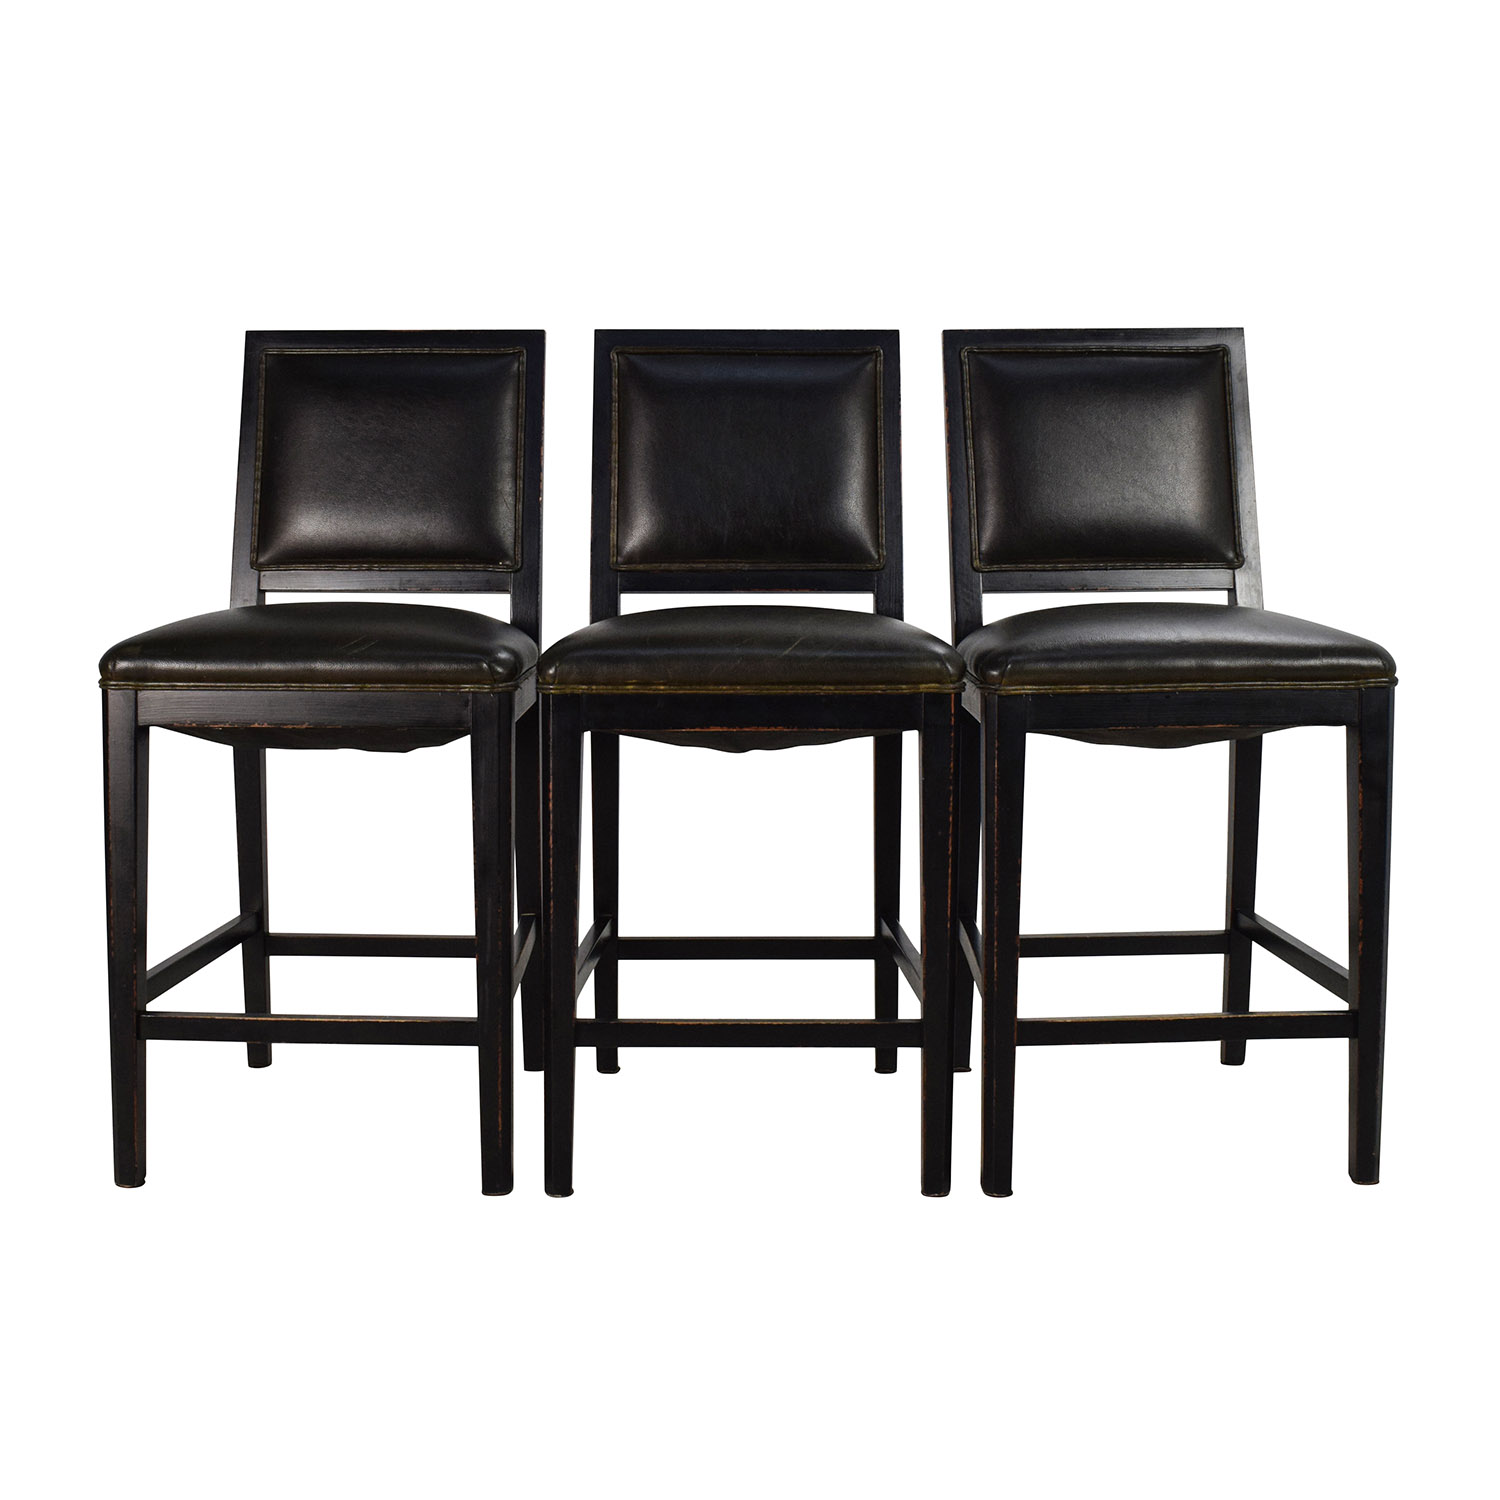 Stupendous 88 Off Crate Barrel Crate Barrel Leather High Chair Set Chairs Dailytribune Chair Design For Home Dailytribuneorg